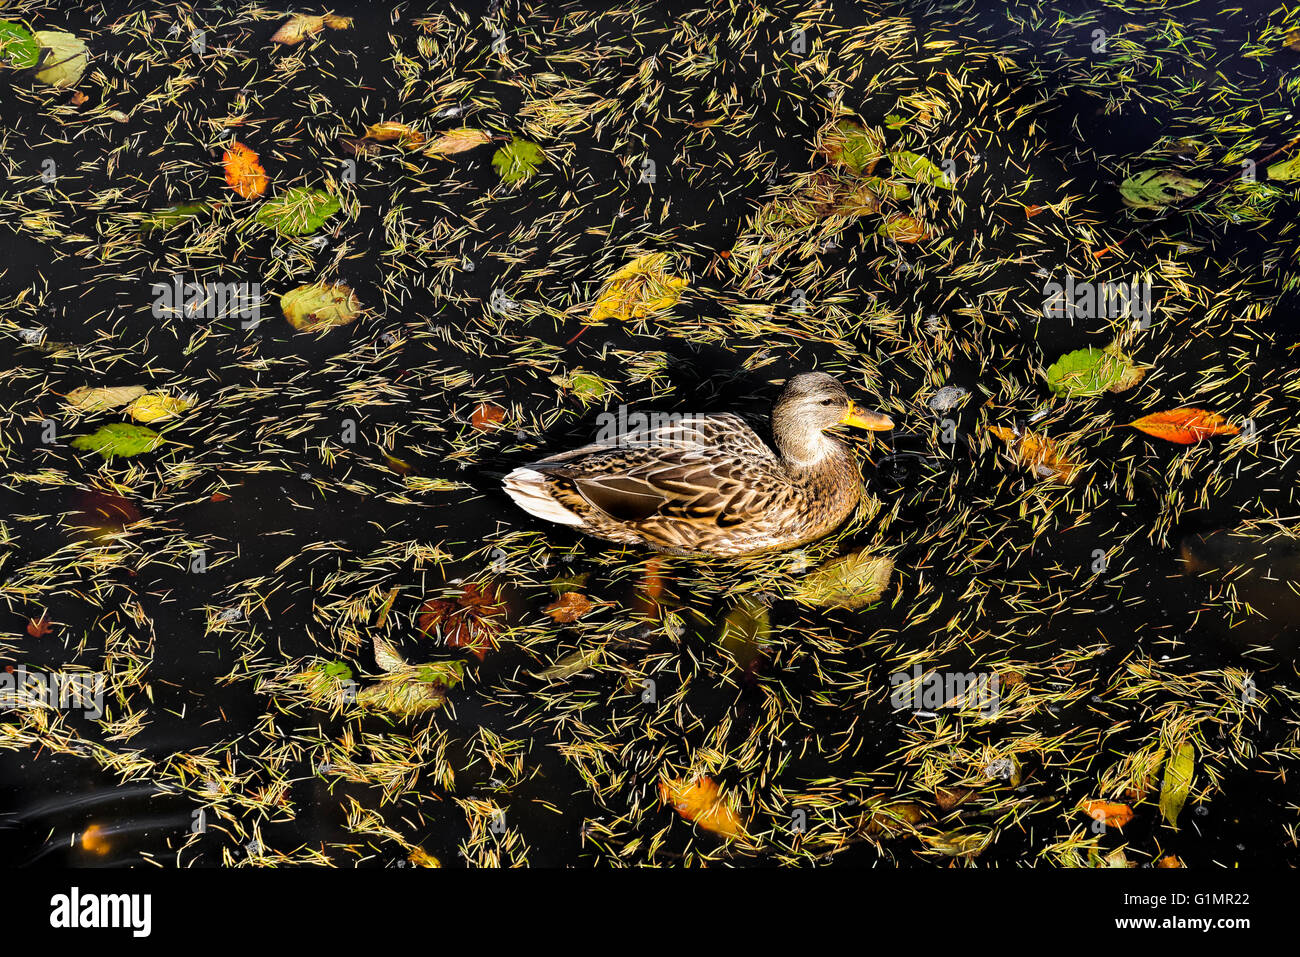 Mallard duck with floating leaf litter, George C. Reifel Migratory Bird Sanctuary in Delta, BC, Canada. - Stock Image